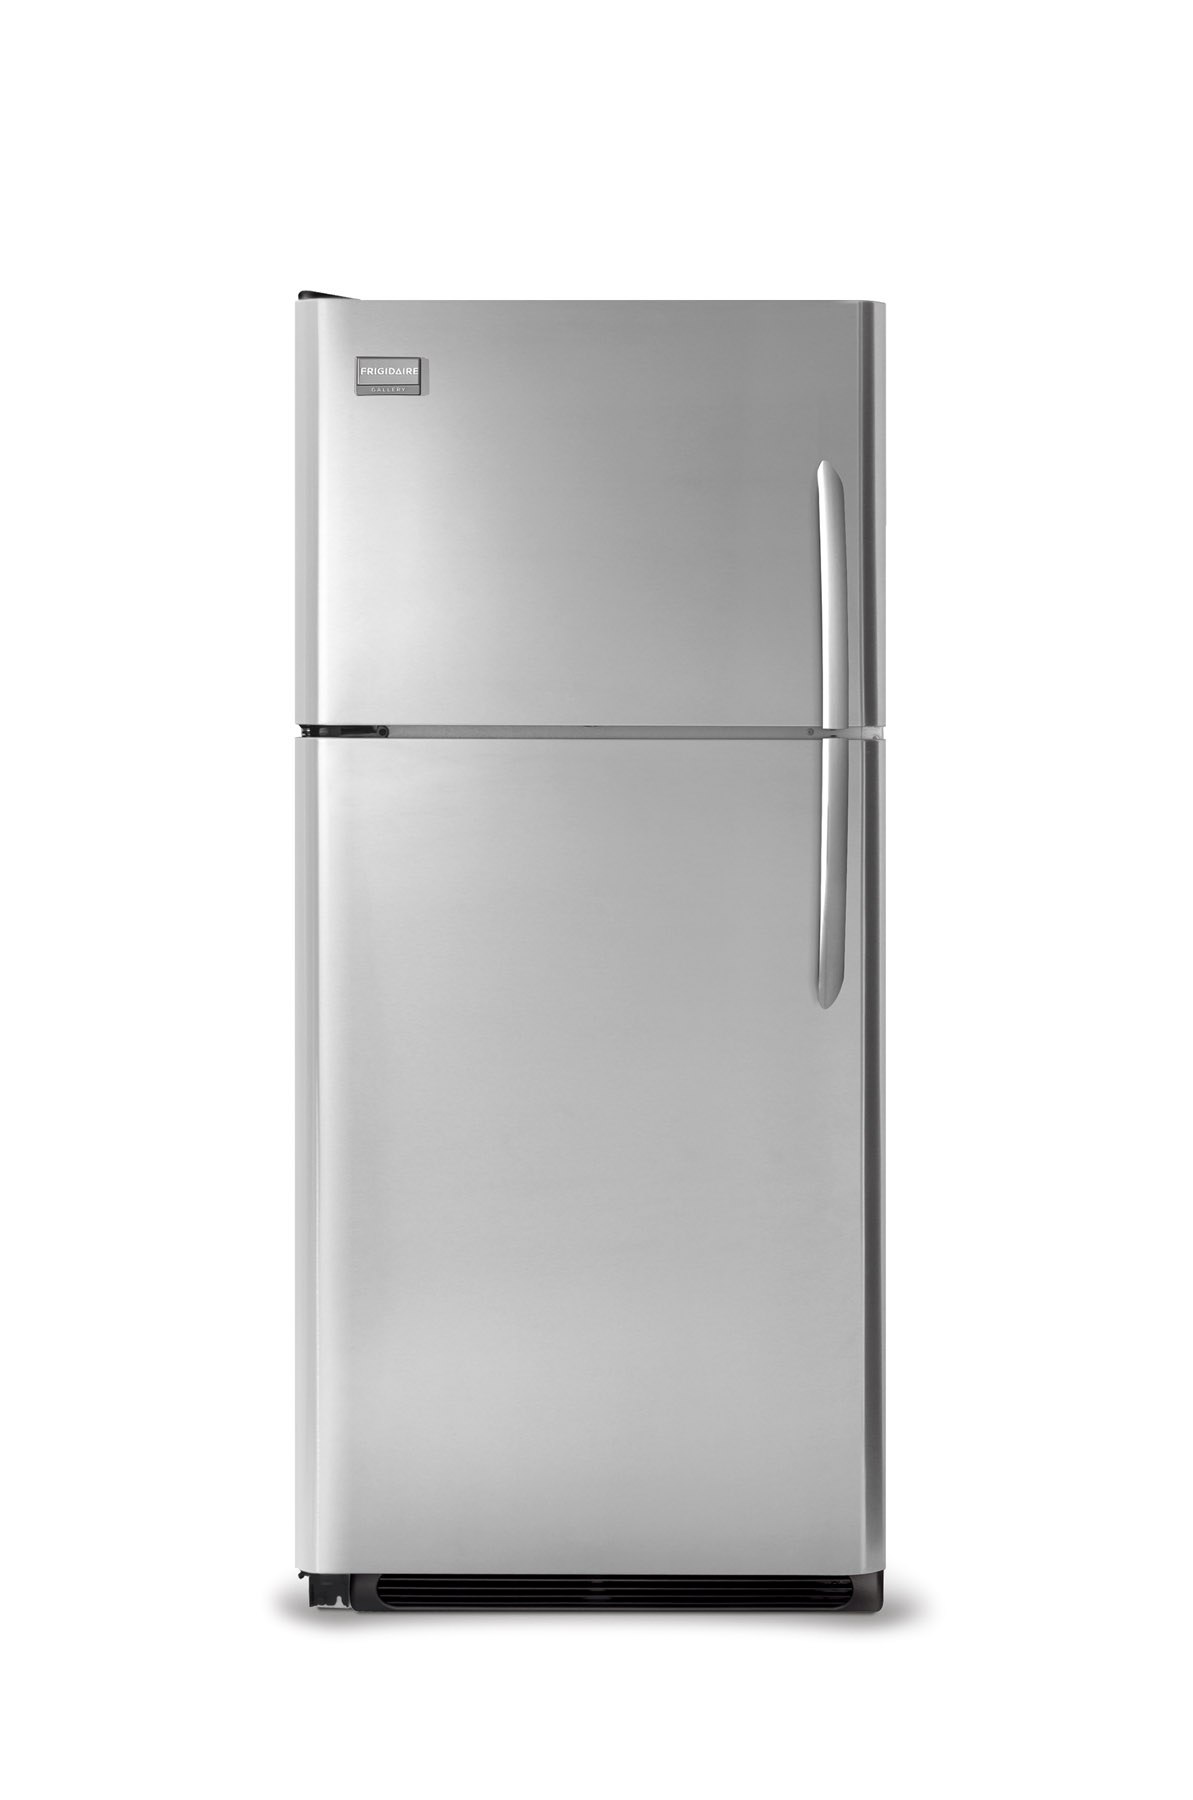 Frigidaire Refrigerator Model FGHT2146KR3 Parts